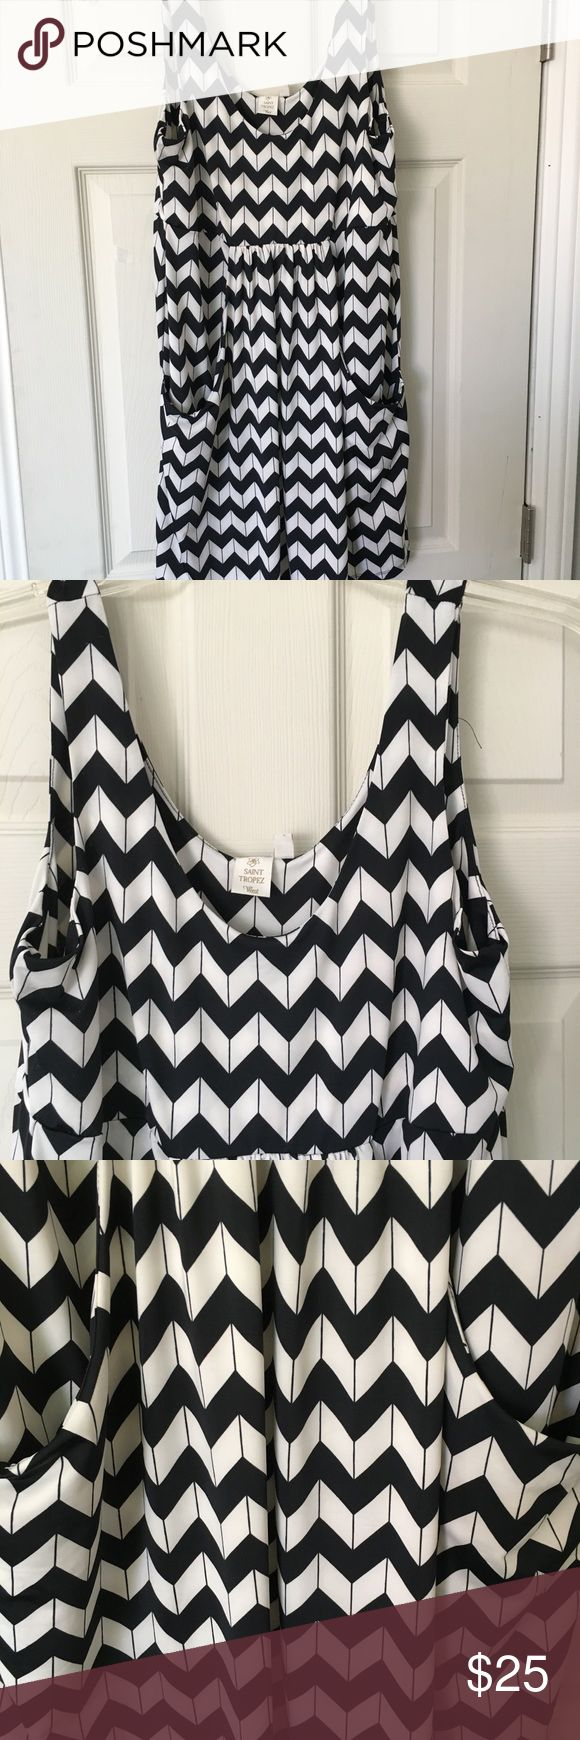 Lovely Chevron Print Bathing Suit Cover-up/Dress Worn once. Like new! Has two pockets in front. Bathing suit material. Super, super Cute on. Saint Tropez West Dresses